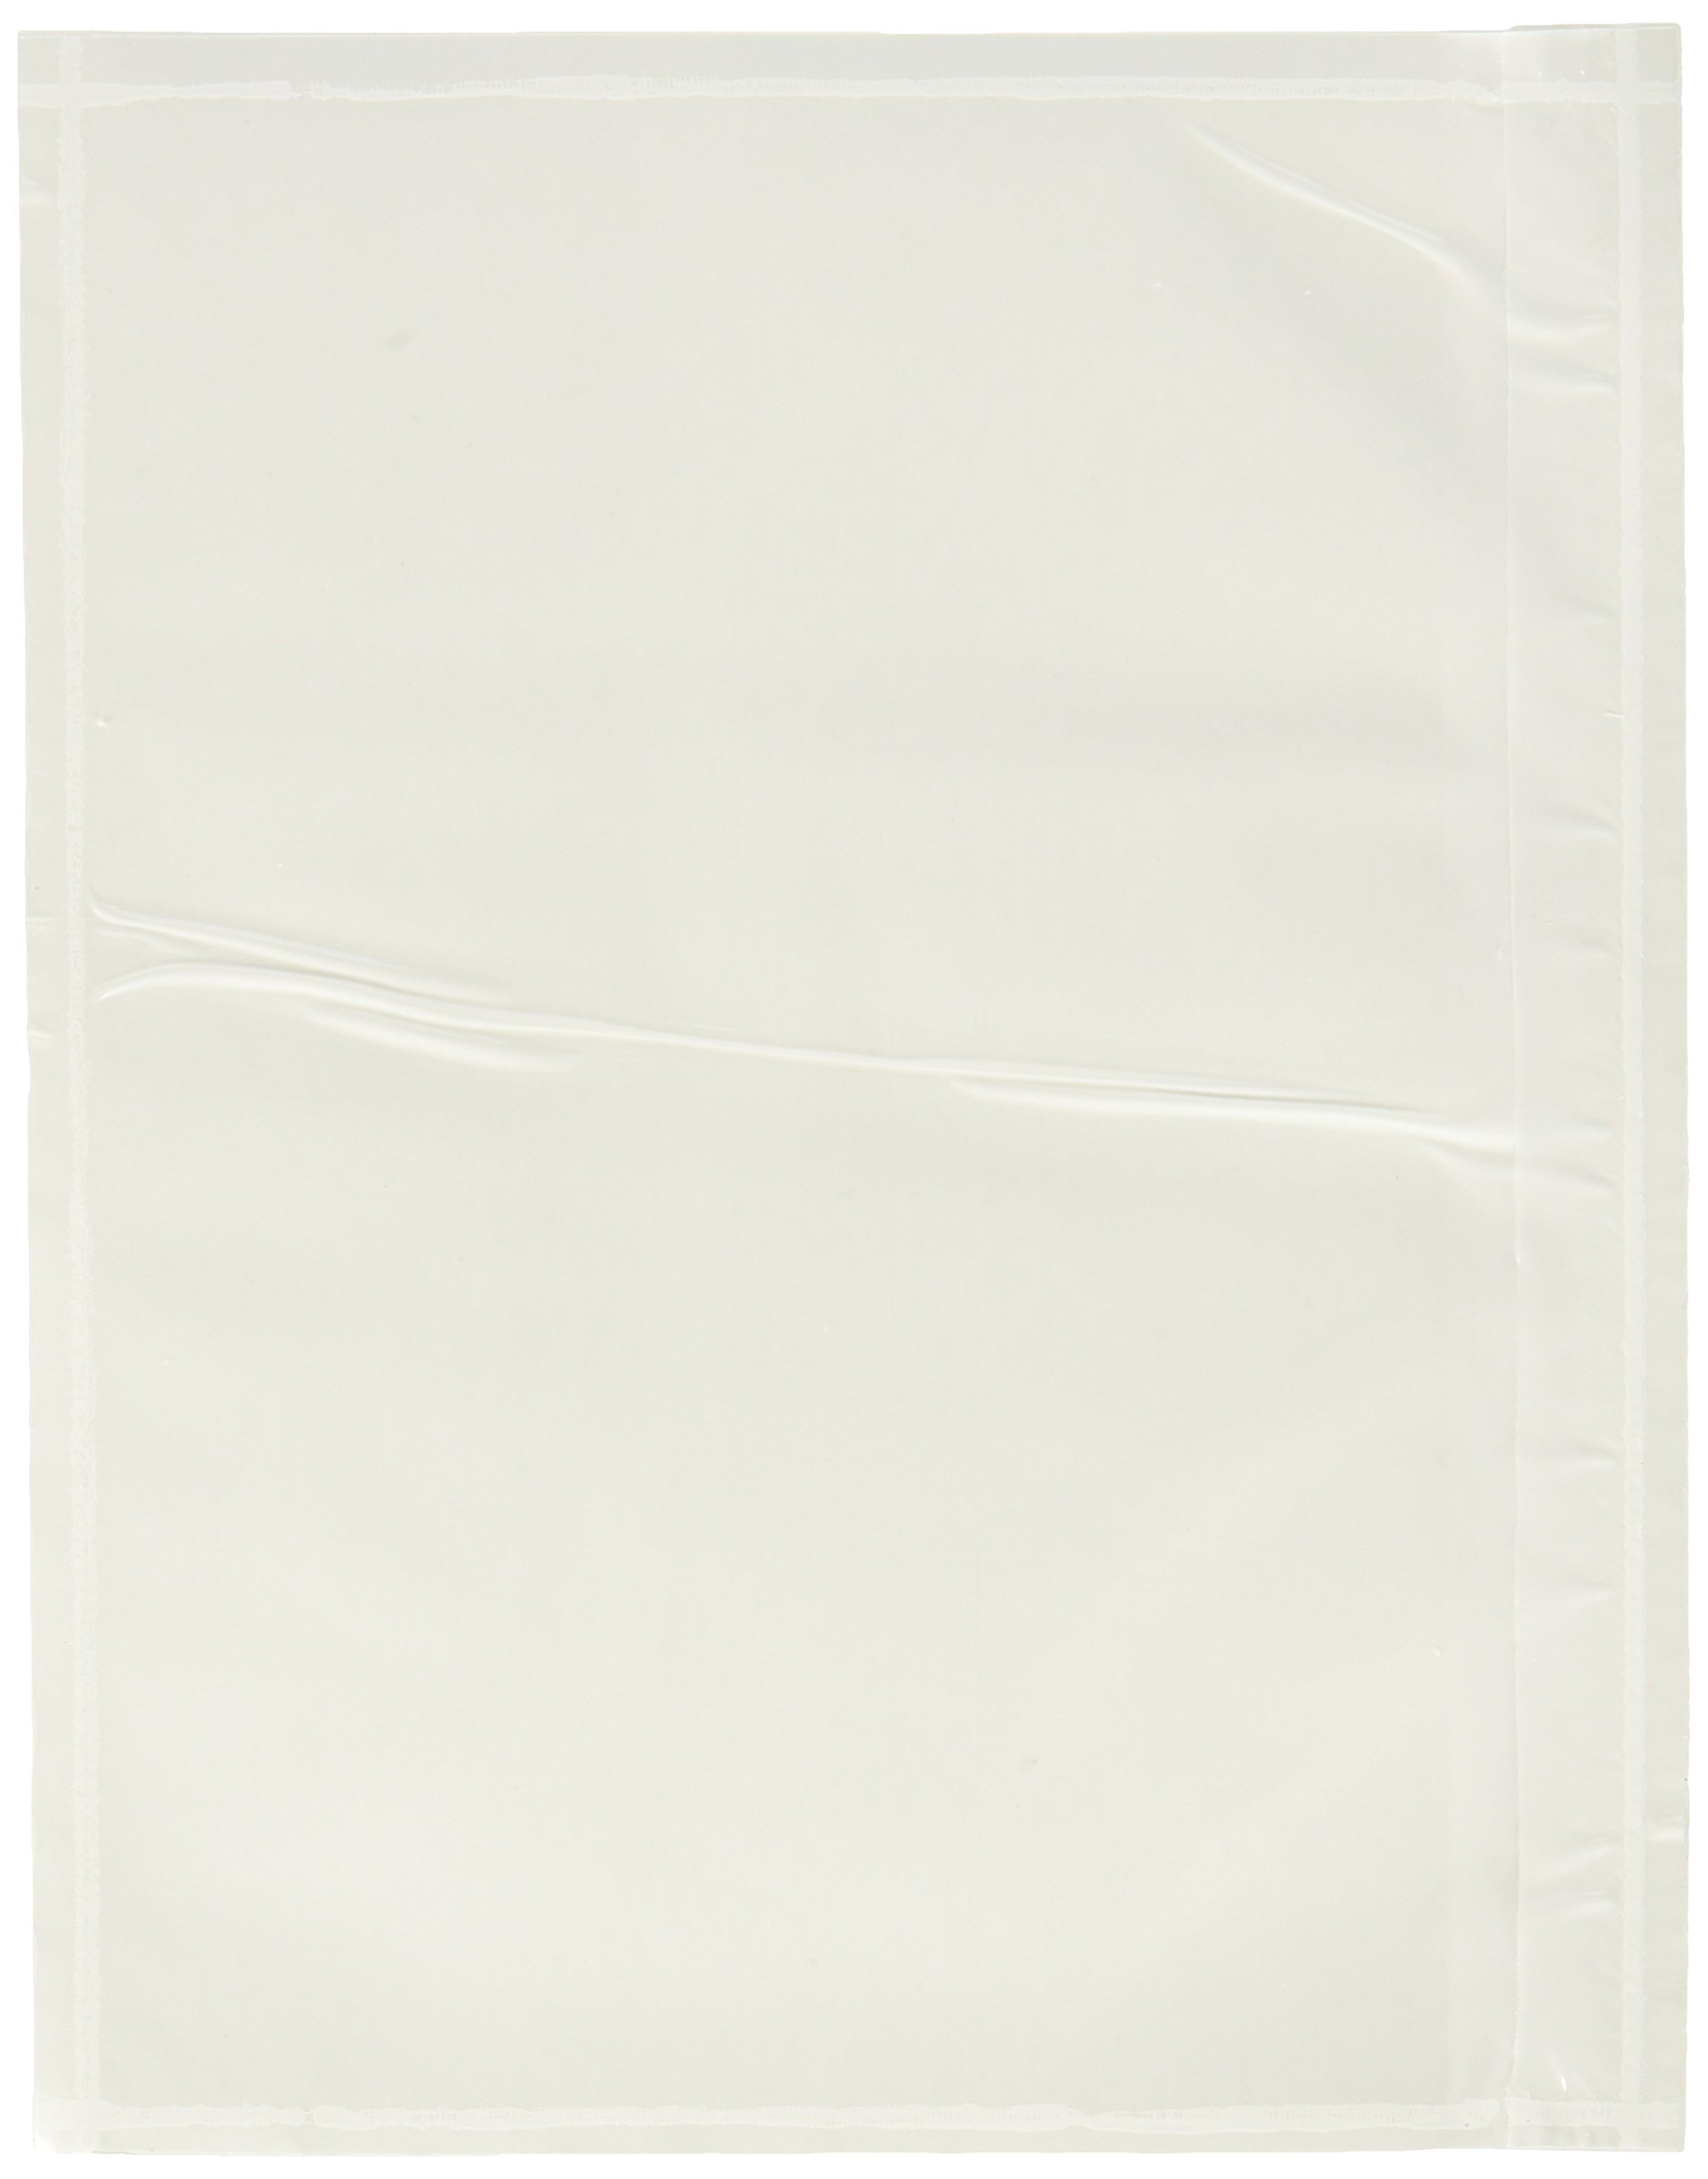 7.5'' x 5.5'' Clear Adhesive Top Loading Packing List/Shipping Label Envelopes Pouches (100 pk)